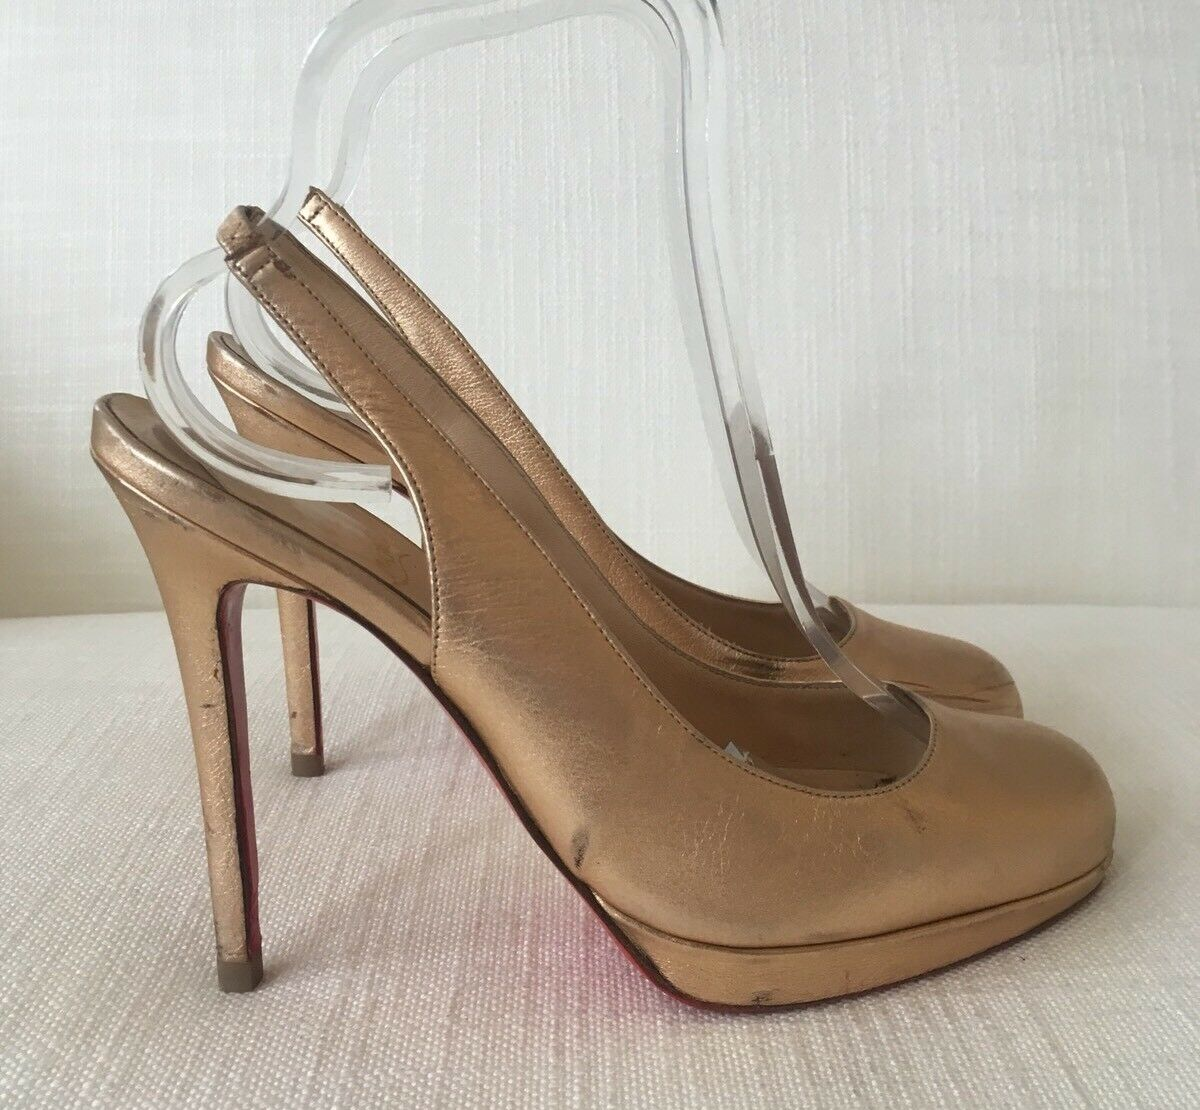 Christian Louboutin Or Rose Horatio Sling chaussures taille 38.5 utilisé